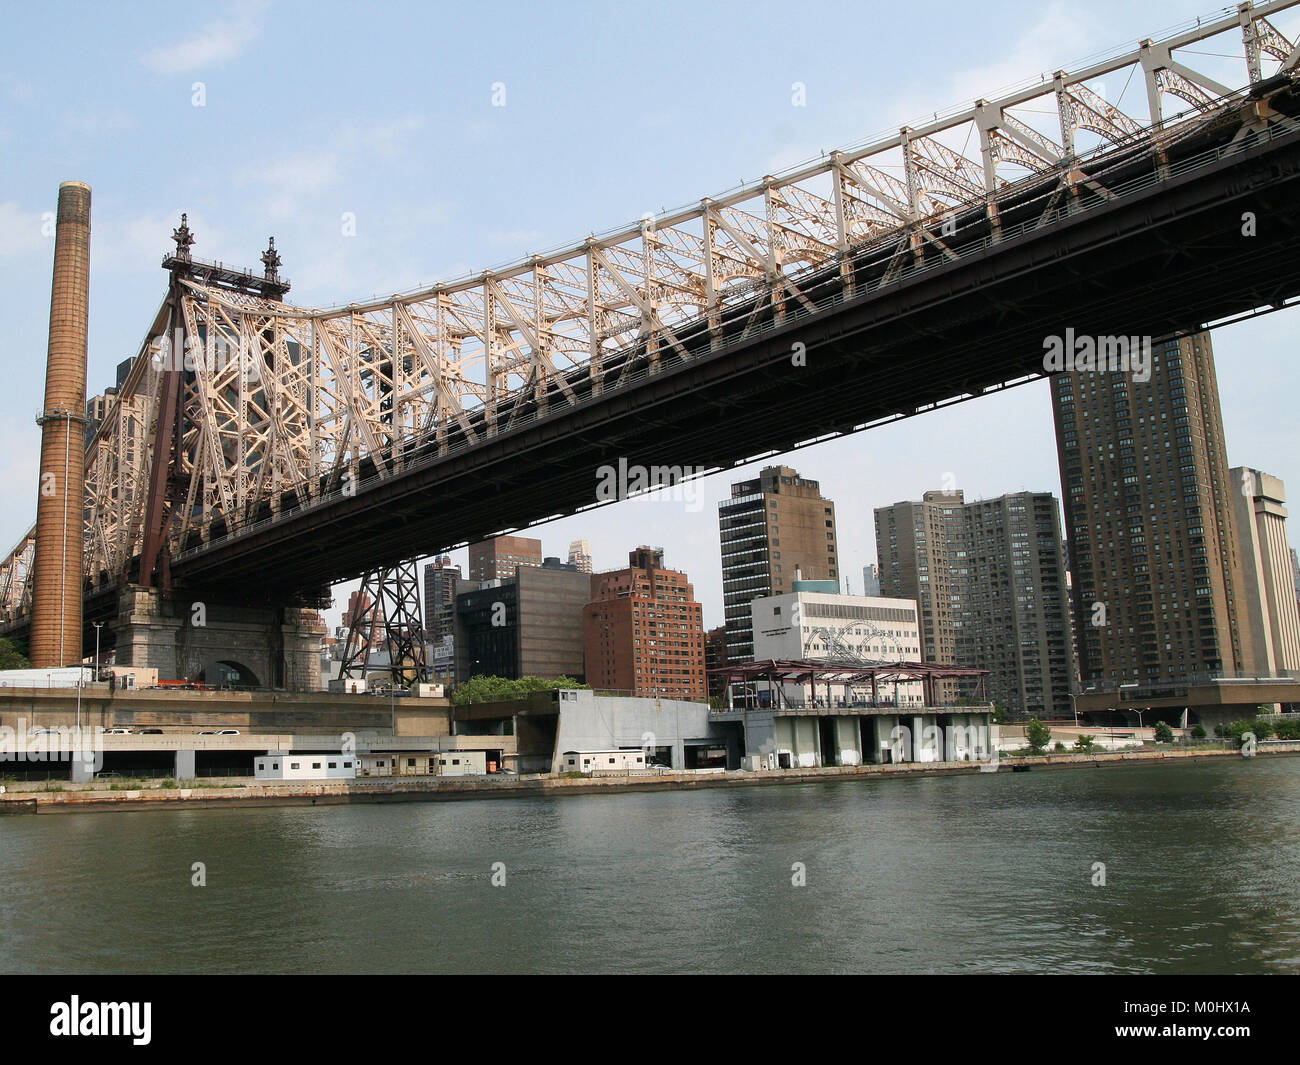 59th Street Stock Photos & 59th Street Stock Images - Alamy